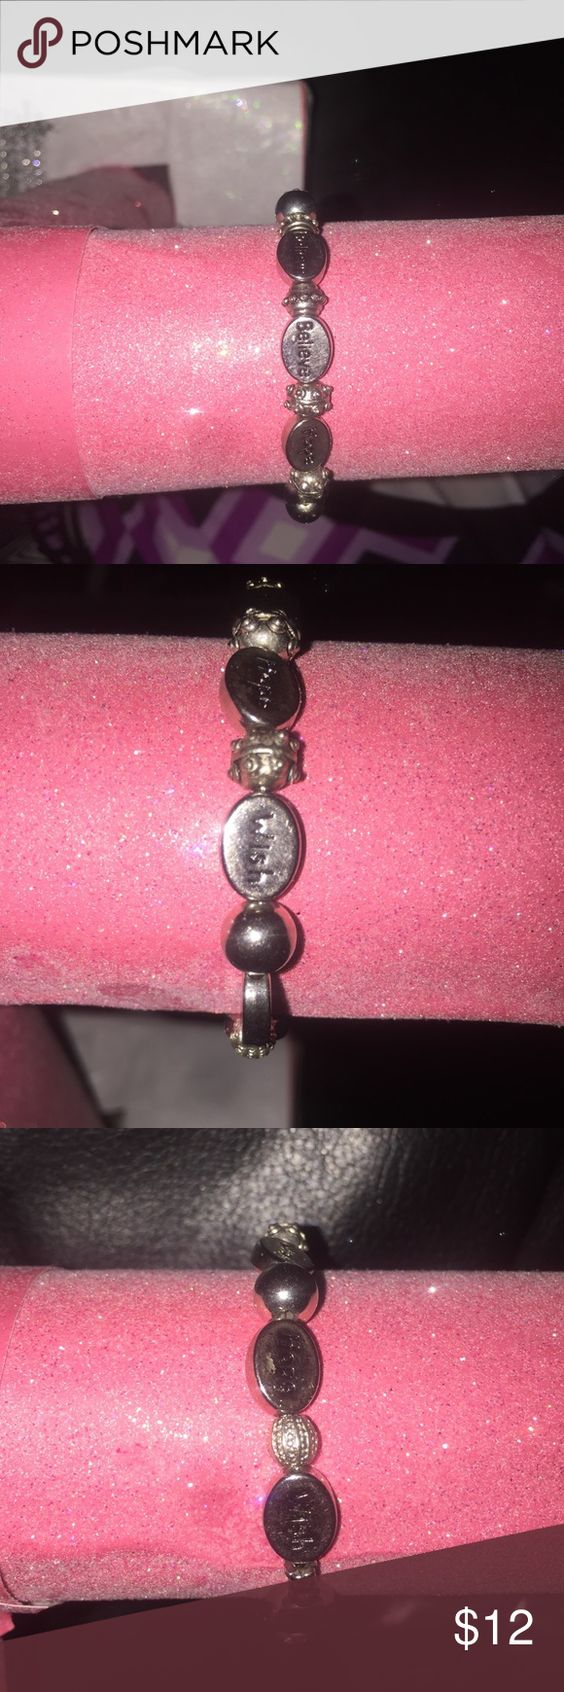 Hope wish believe bracelet Silvertone hope wish believe stretchy bracelet! Very nice beads with hope wish and believe on them! Stretch bracelet one size fits all Jewelry Bracelets